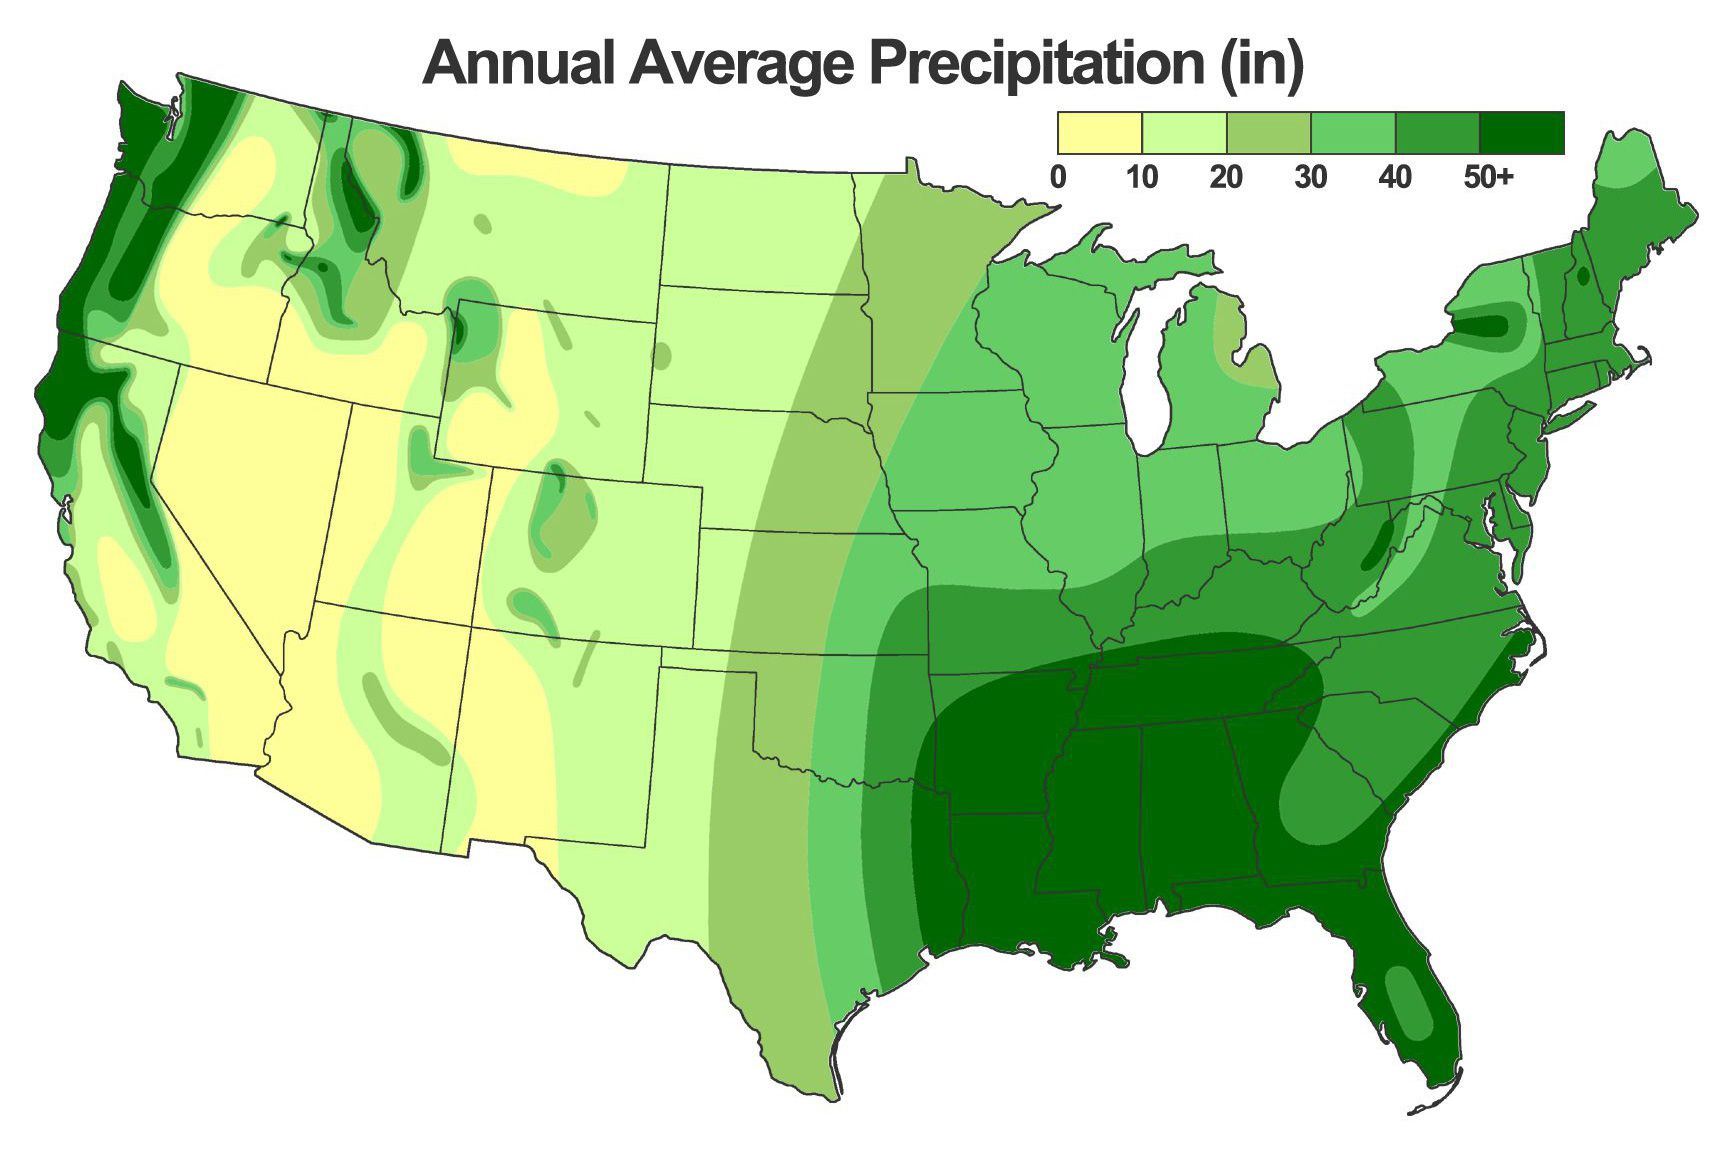 Map Of Annual Average Precipitation In The US From To - United states precipitation map